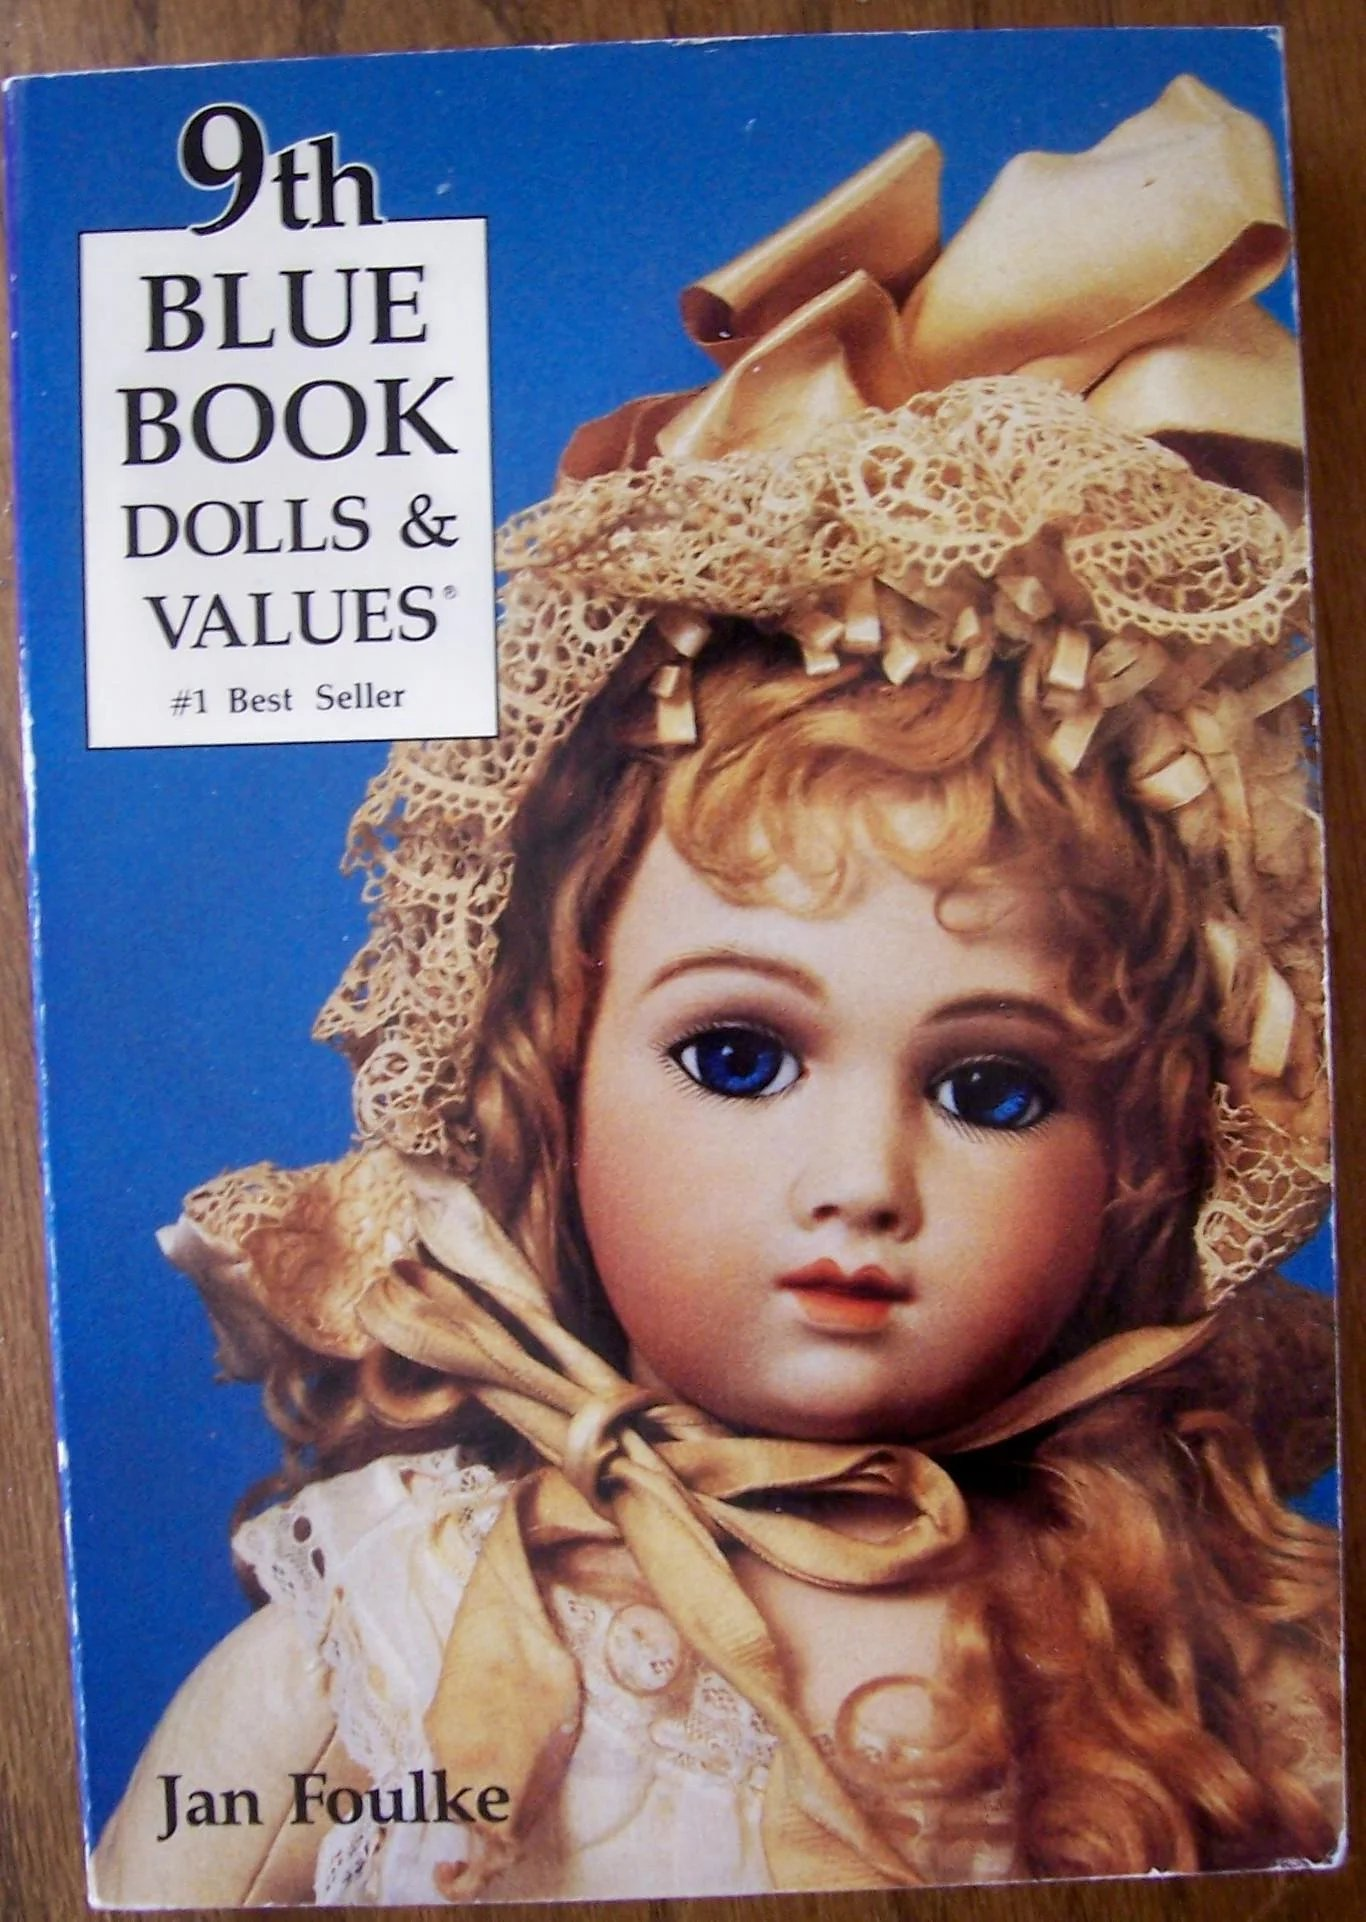 FOUR Blue Book Dolls & Values by Jan Foulke. 6th, 9th, 10th & 14th ...